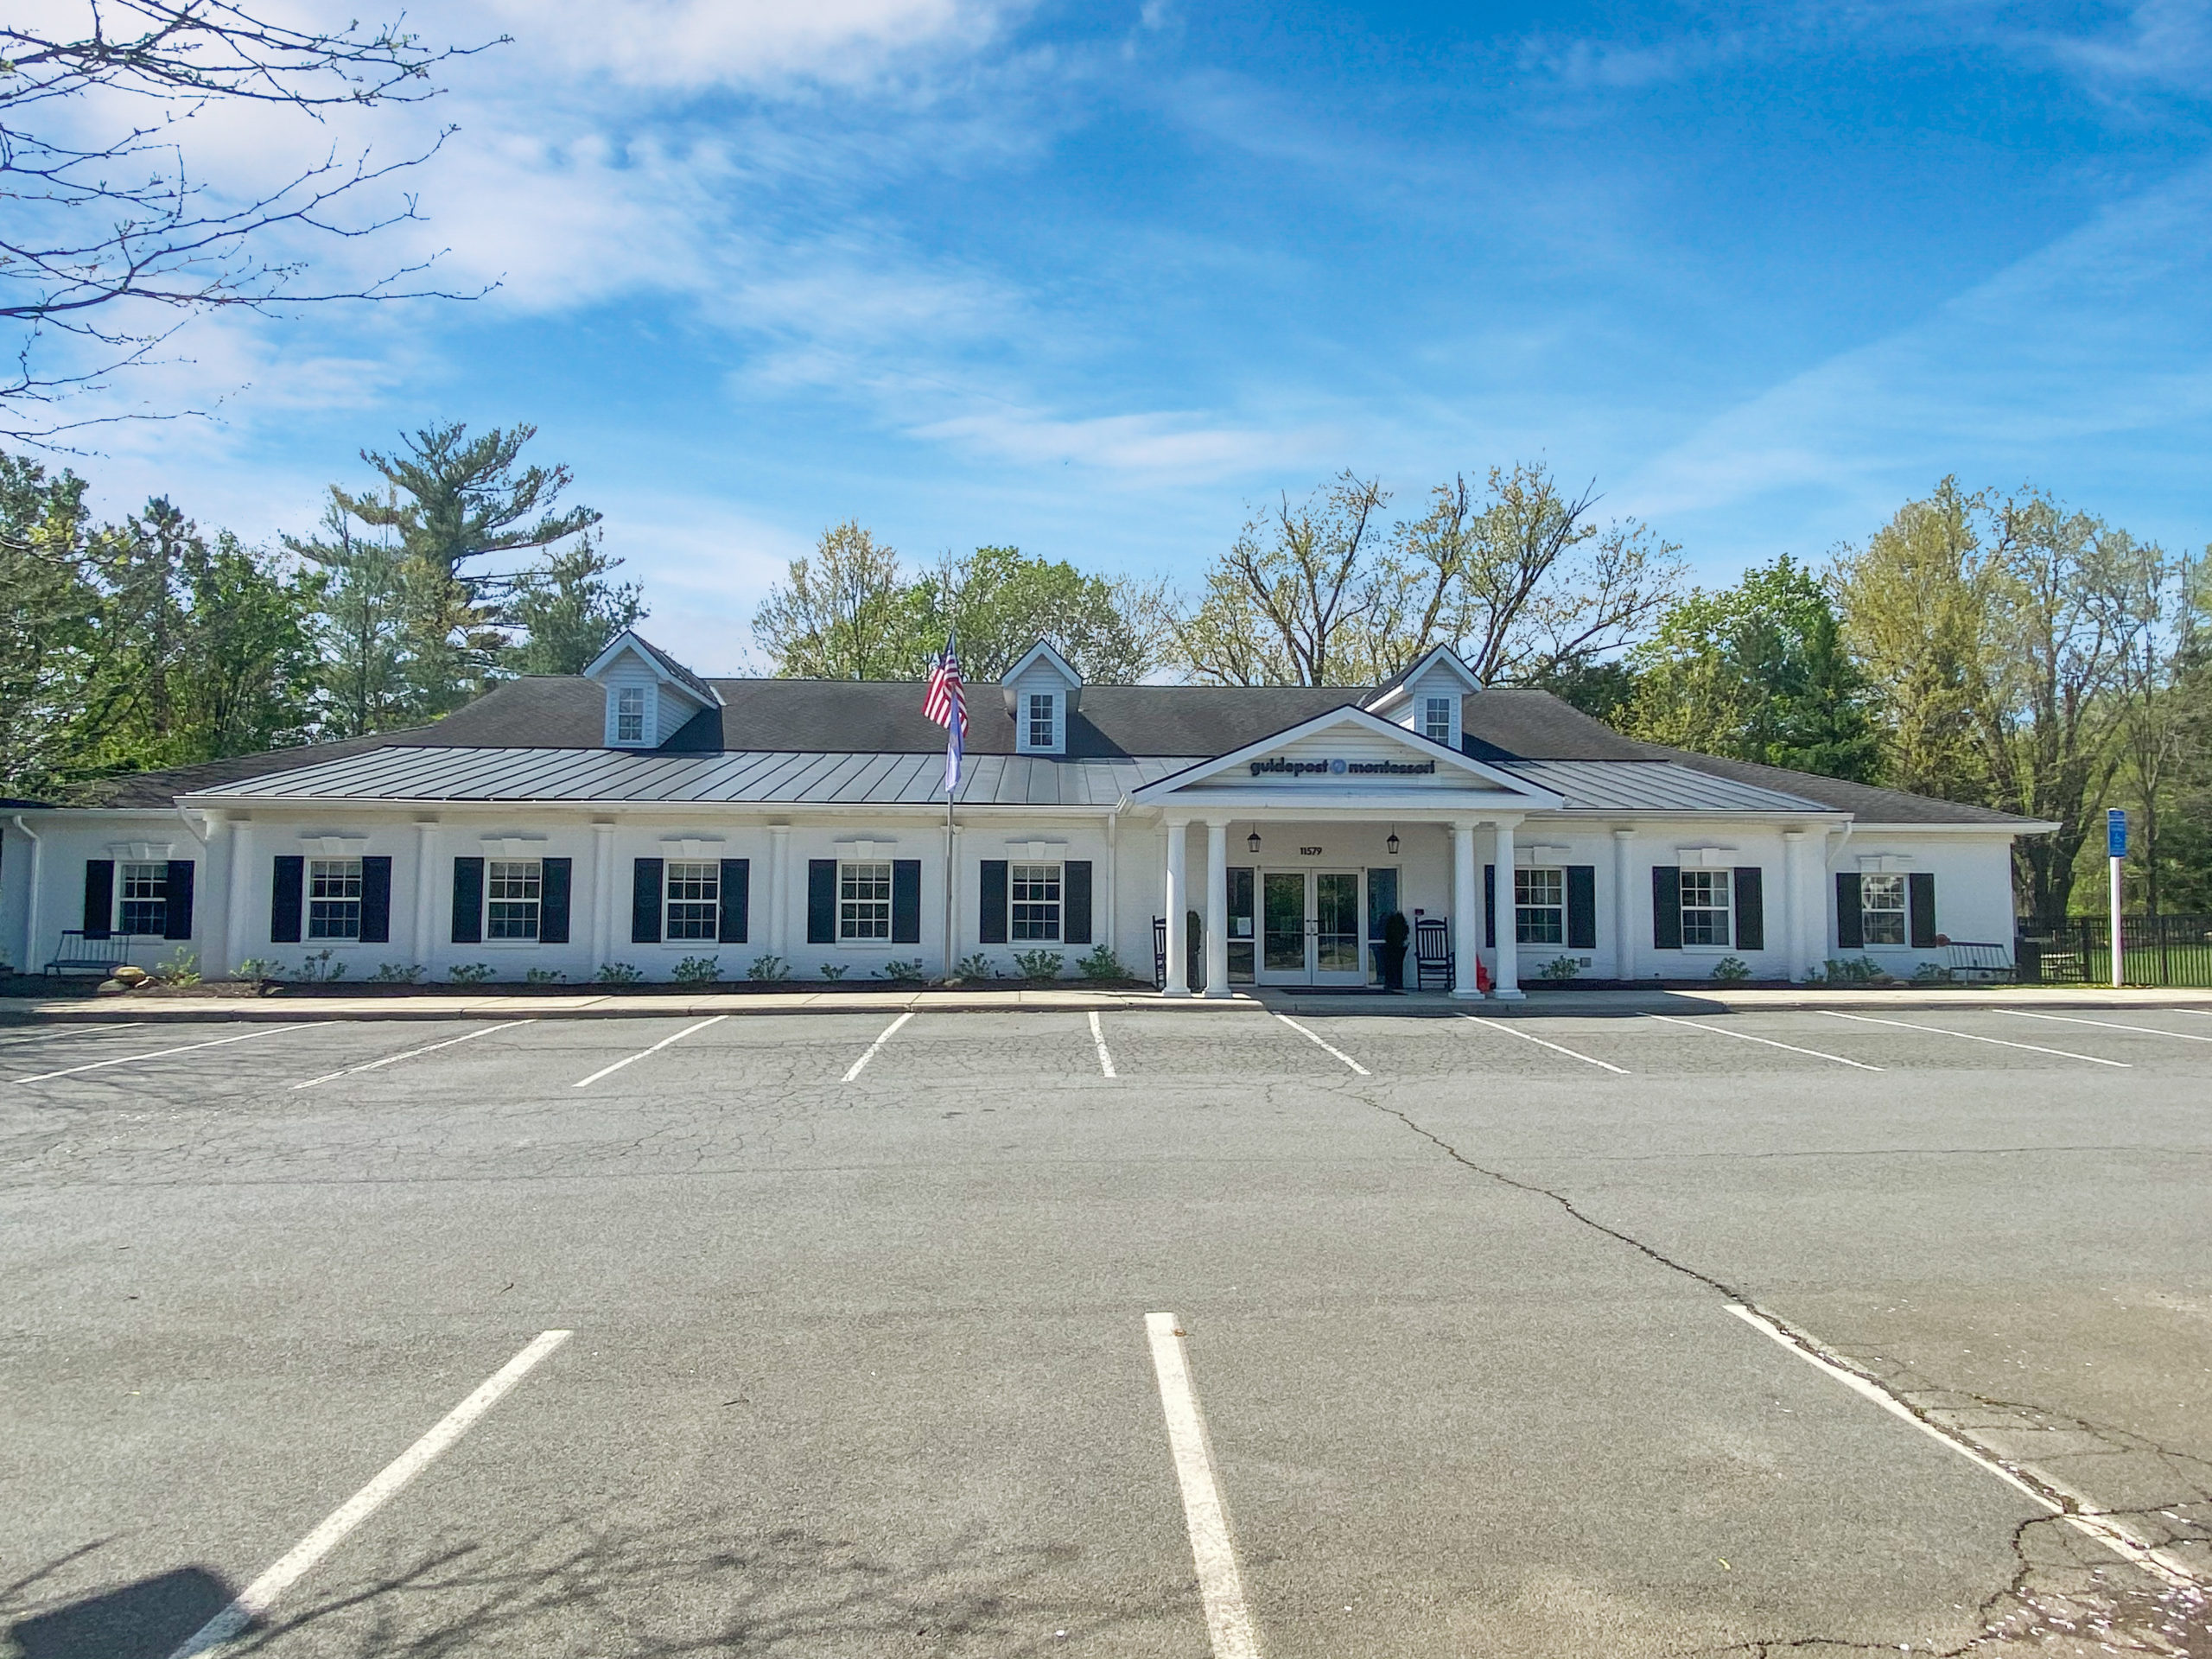 NNN Portfolio in Fairfax County, VA | NOI: $1,124,373 | 3% Annual Increases | 15 Years on Lease Remaining